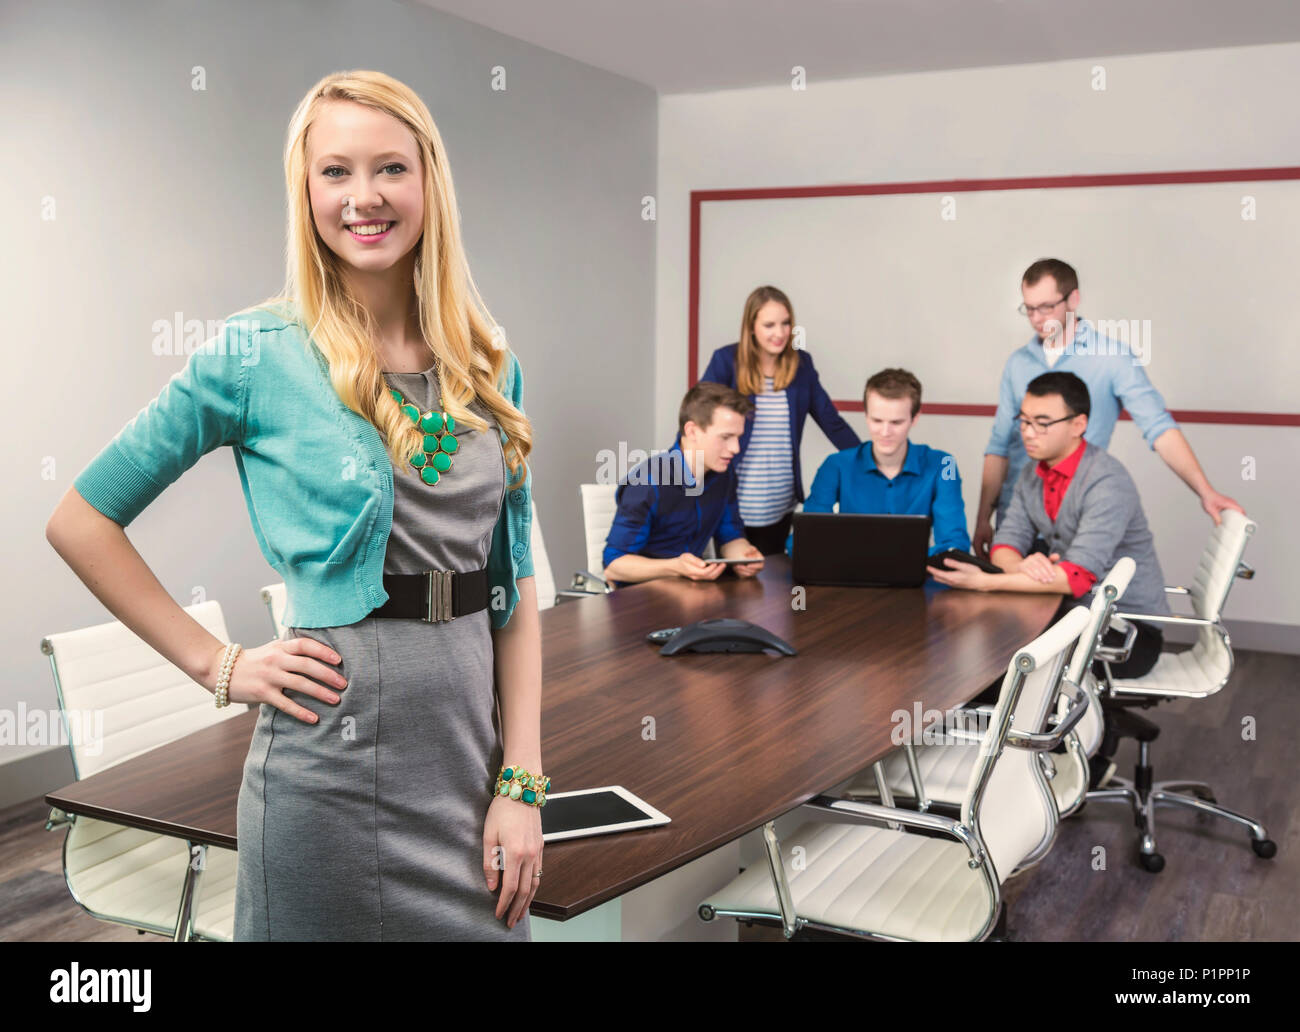 A beautiful young millennial business woman working on her tablet in a conference room with her co-workers; Sherwood Park, Alberta, Canada - Stock Image